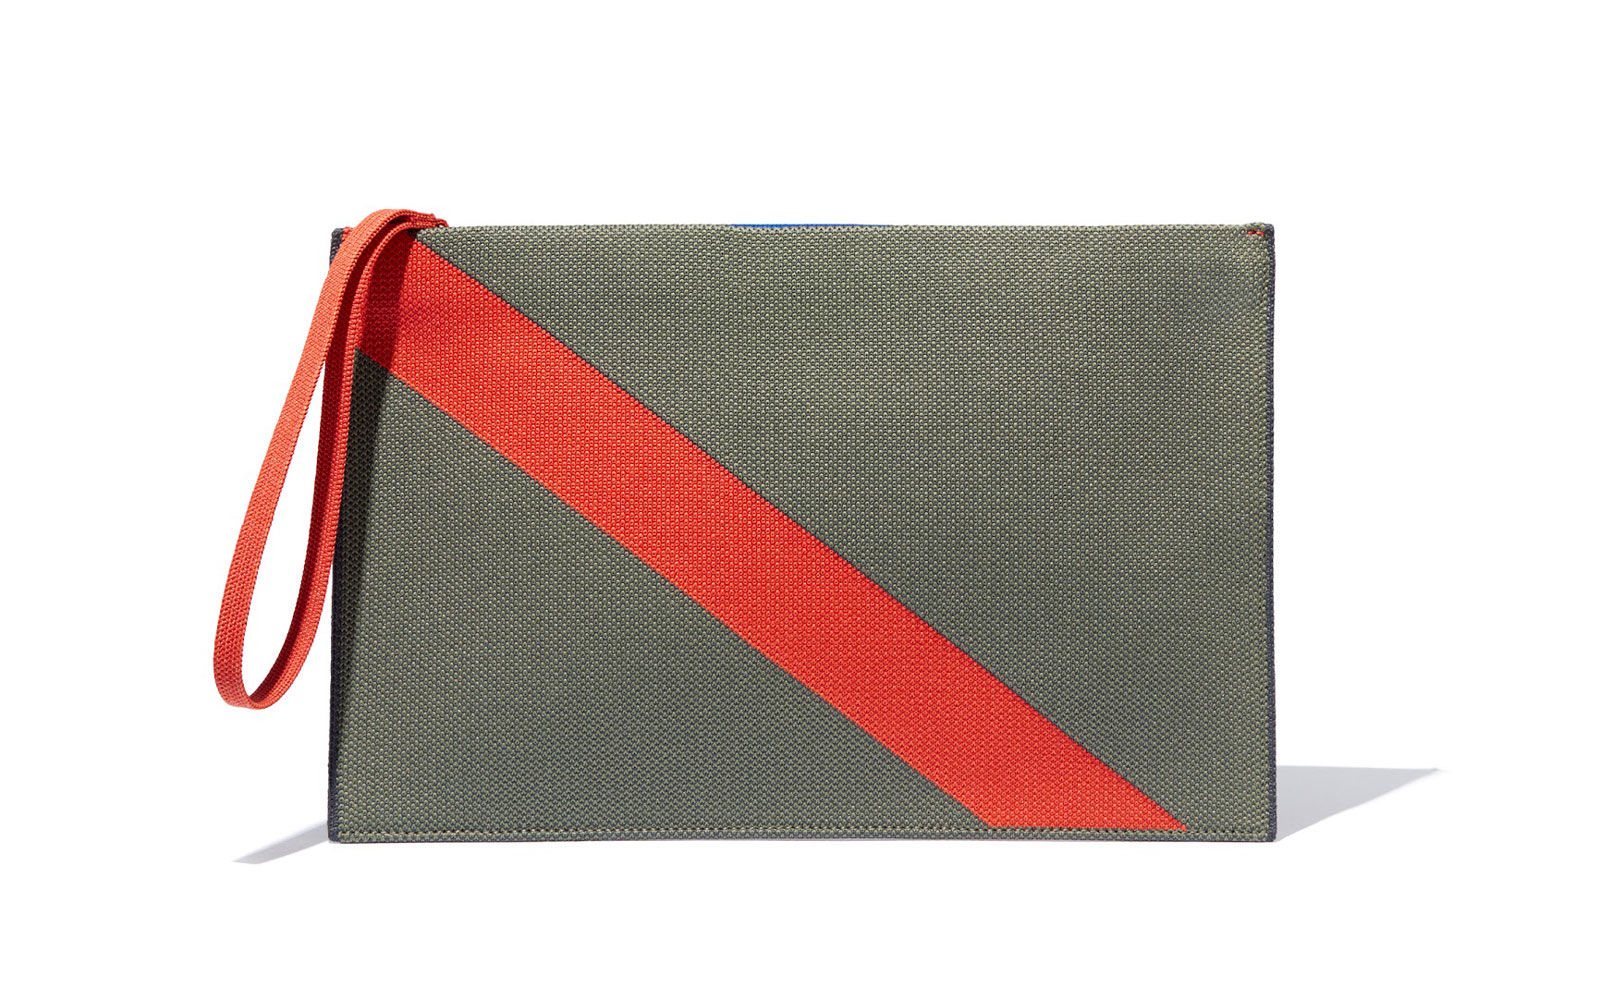 Green and red striped pouch